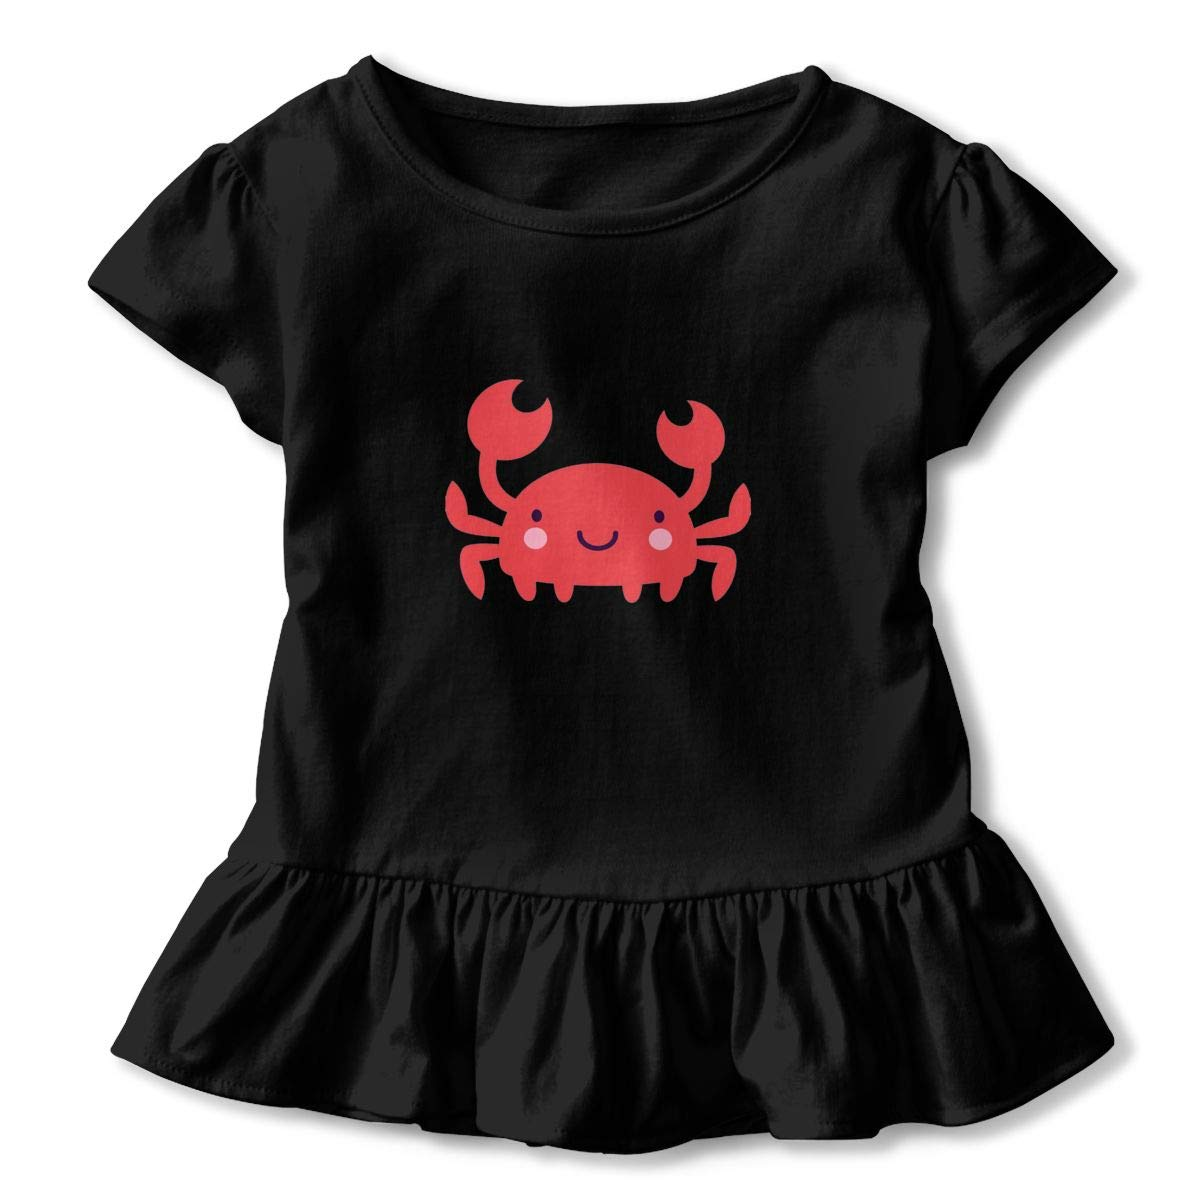 Happy-girl Ye Crab Outdoor Lover Short-Sleeve Tunic T-Shirt